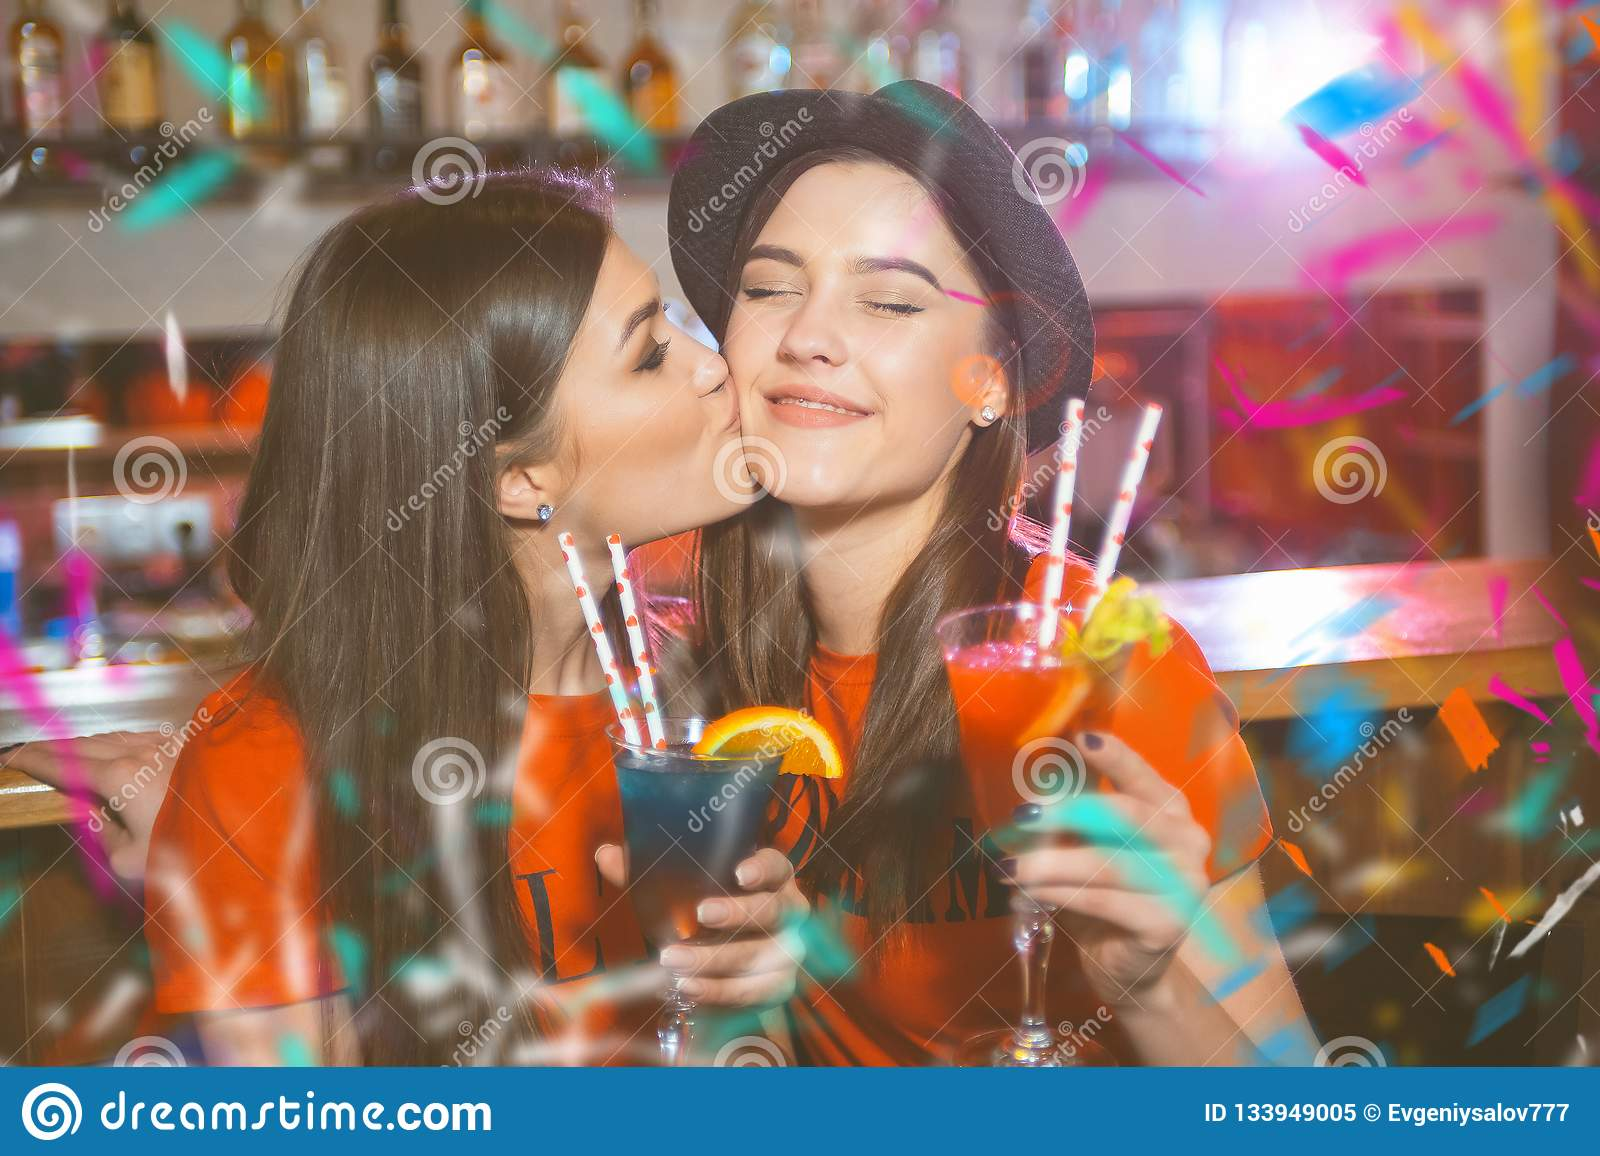 Two young lesbian girls kissing at a club party.